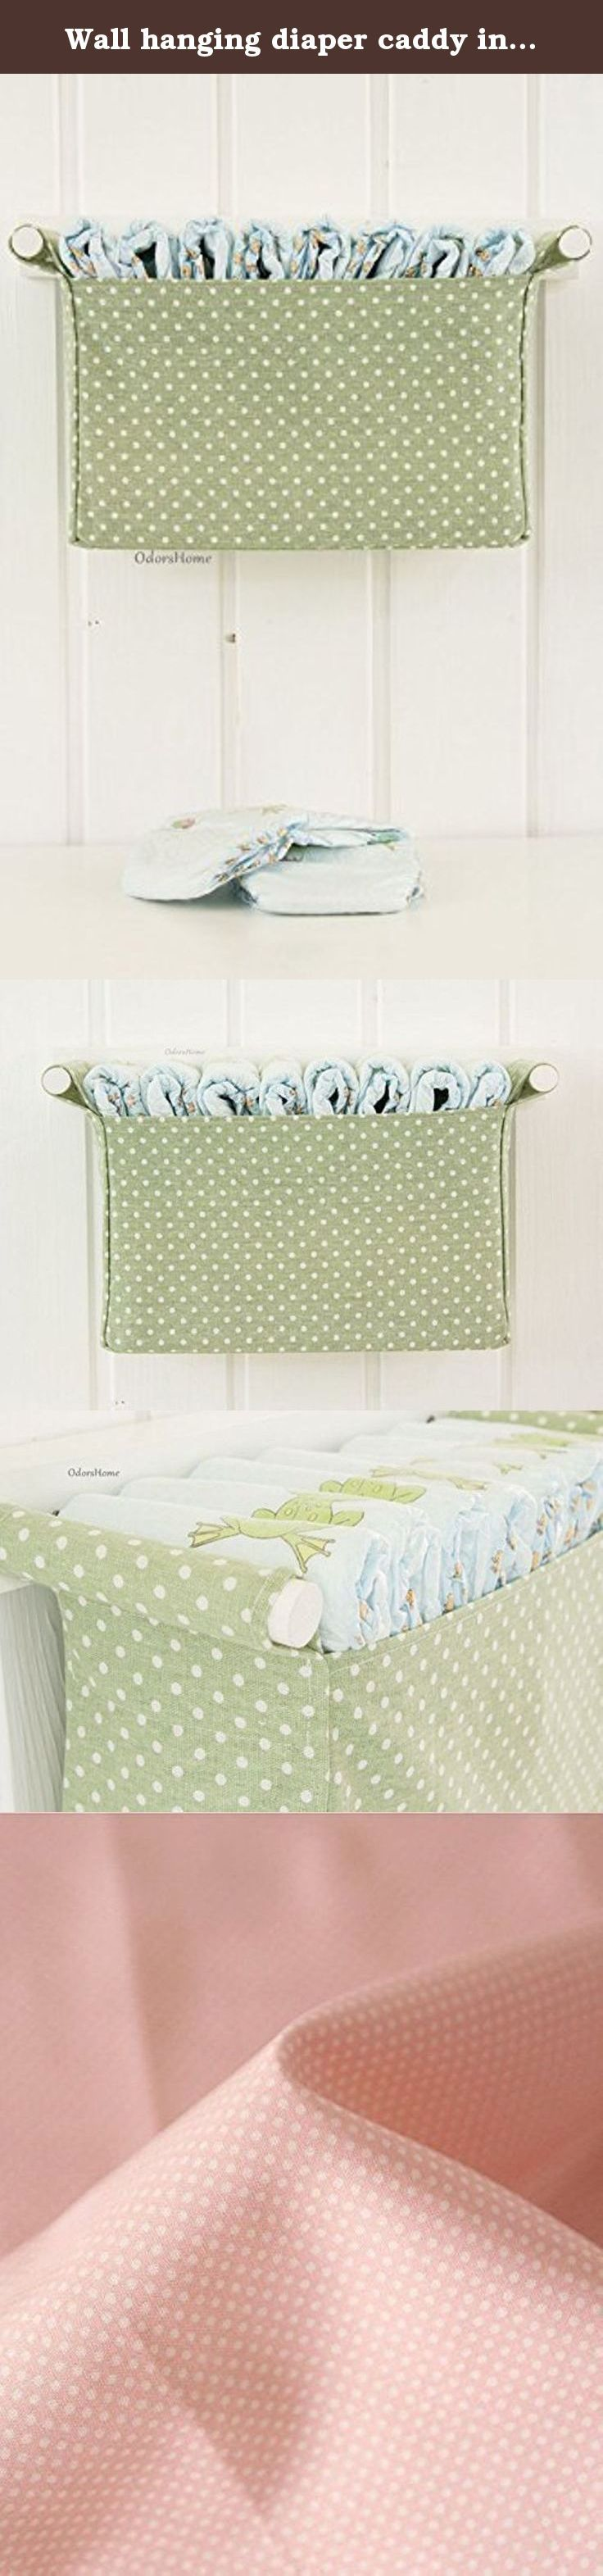 Wall hanging diaper caddy in light olive, dark mint colour, baby nursery room, baby shower gift. Fabric pocket with wooden rod, wall mounted diaper bag for mint and white nursery Great nursery storage idea for the toys, small things, diapers, baby accessories, tissues, nursery items Wall mounted storage basket - olive and white dotted patterned canvas fabric bin - Component: 1 fabric basket and the wooden rack - Color: white based grey stars - Used 100% Cotton linen and cotton - Ply-wood...